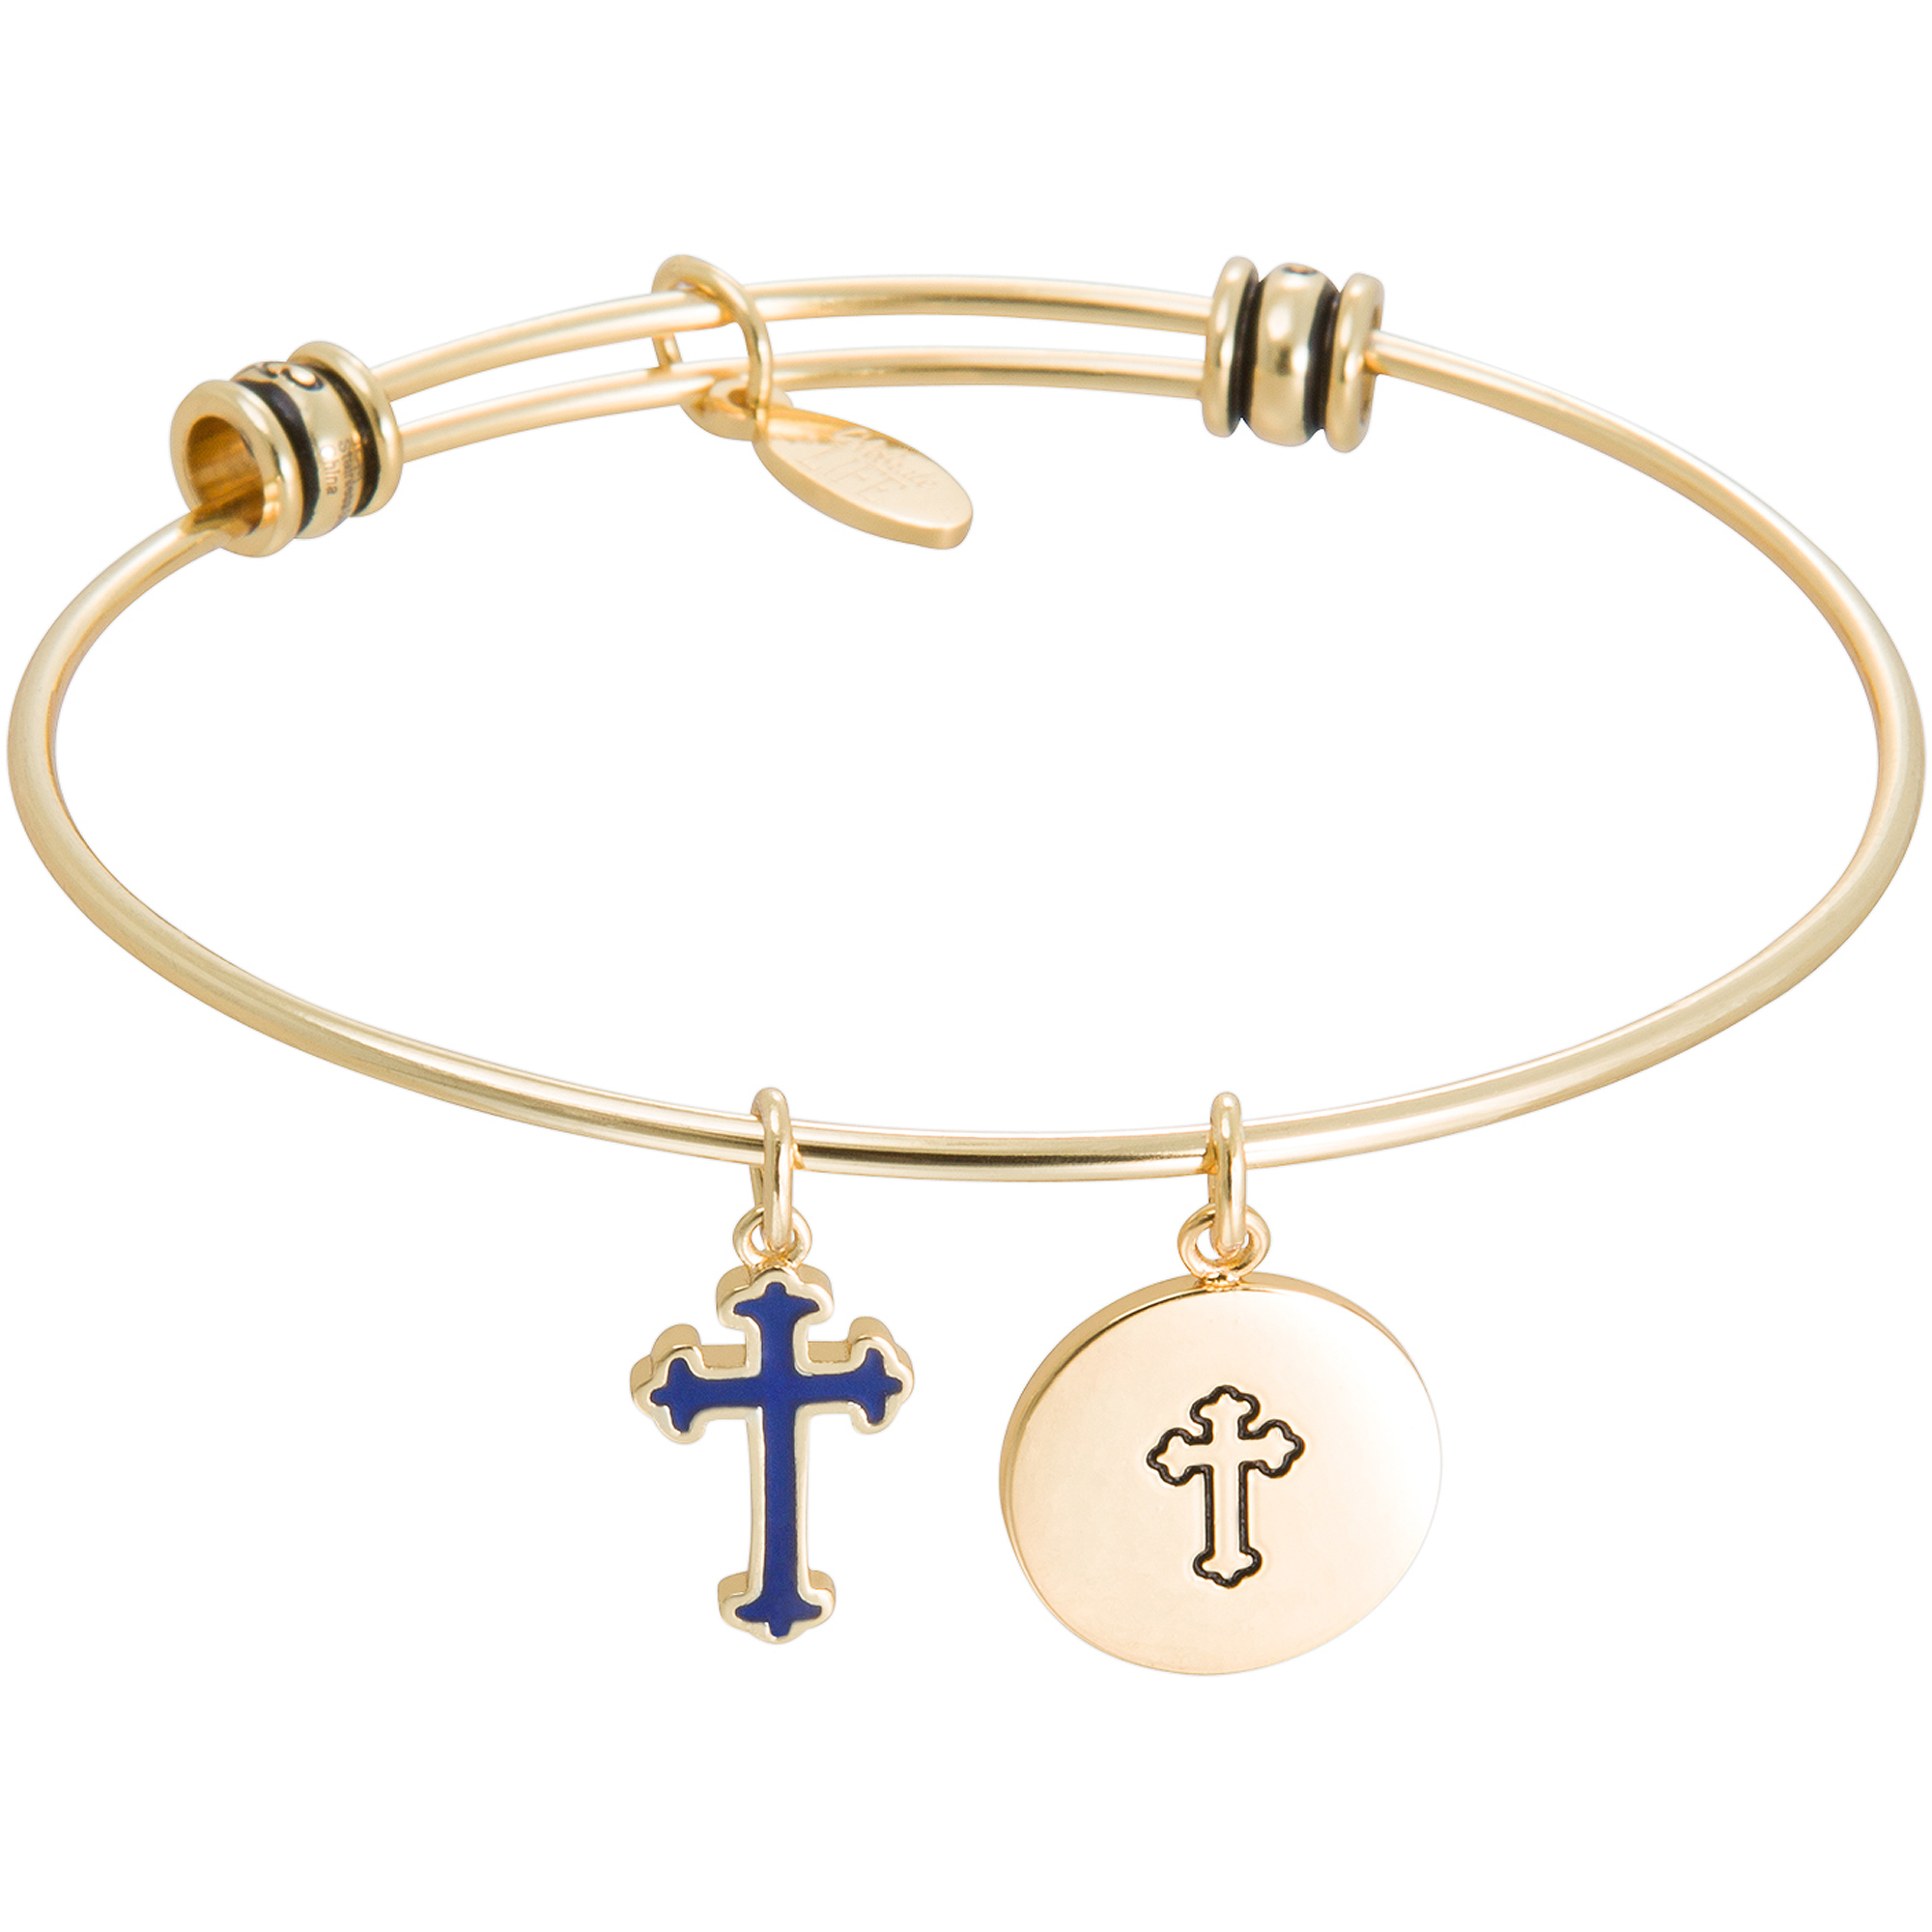 "Connections from Hallmark Stainless Steel Yellow-Tone ""Keep the Faith"" and Cross Multi-Charm Wire Bangle, 7.75"